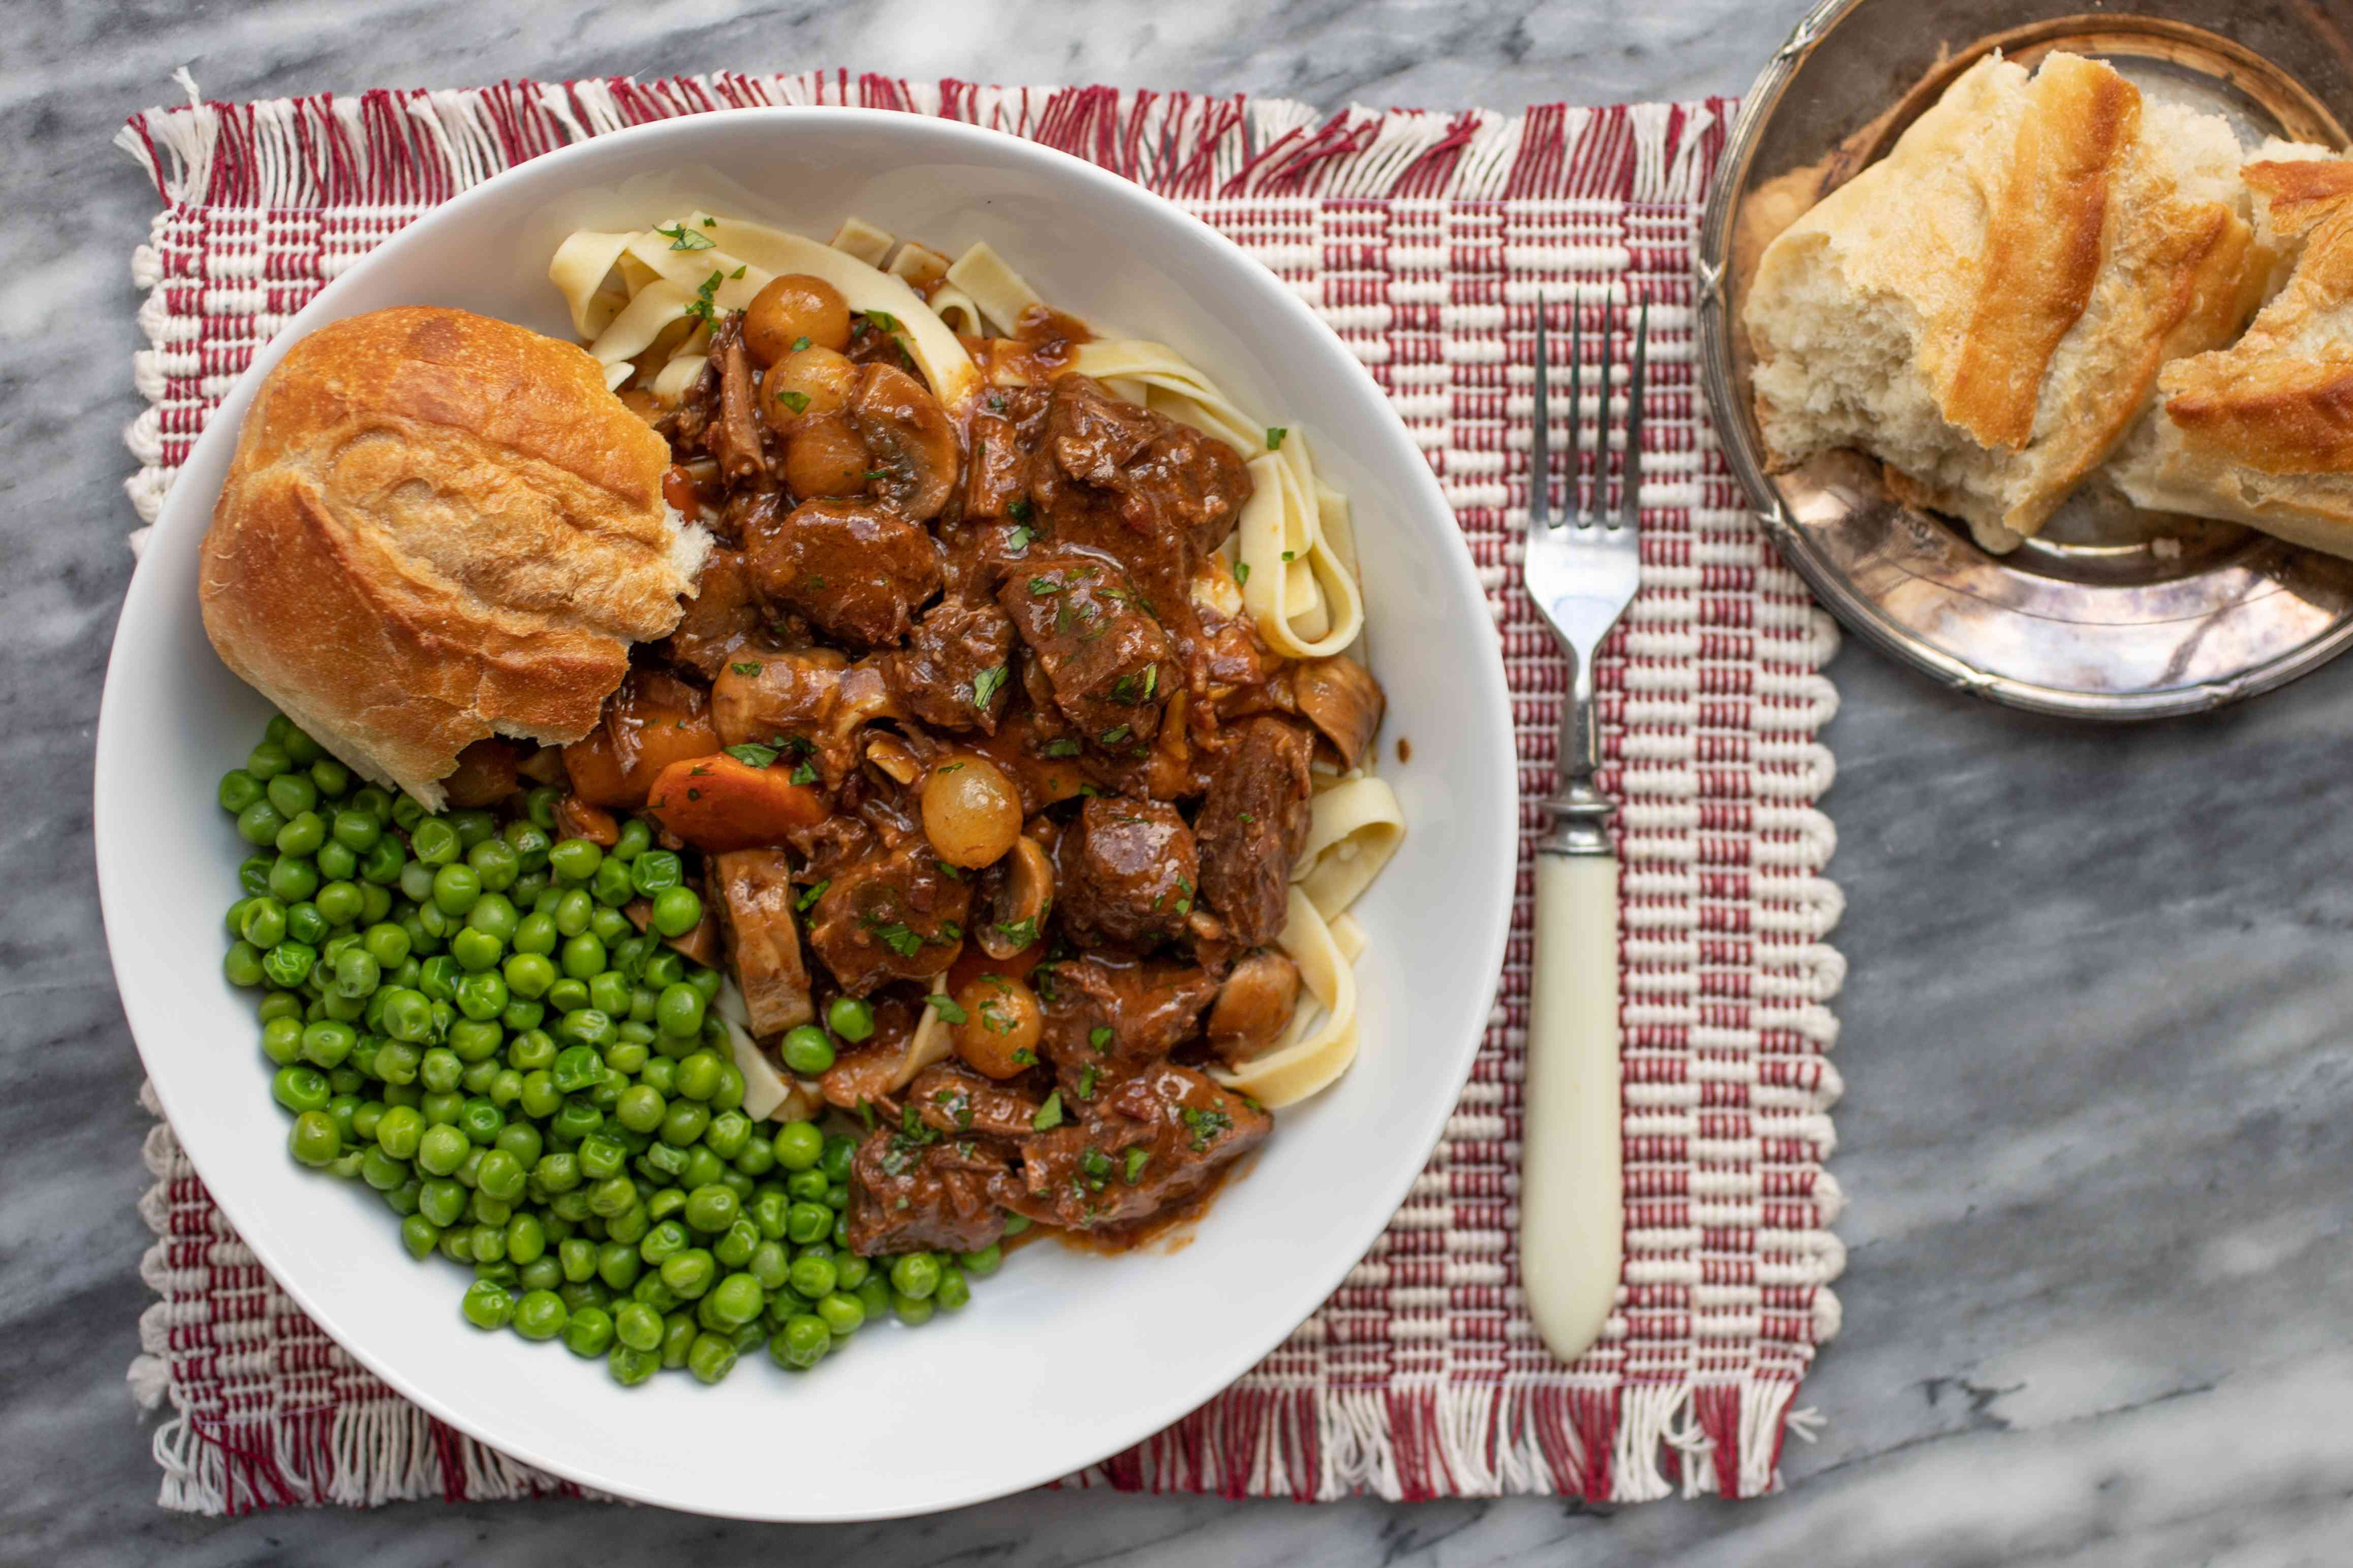 instant pot beef bourguignon in a serving dish with french bread